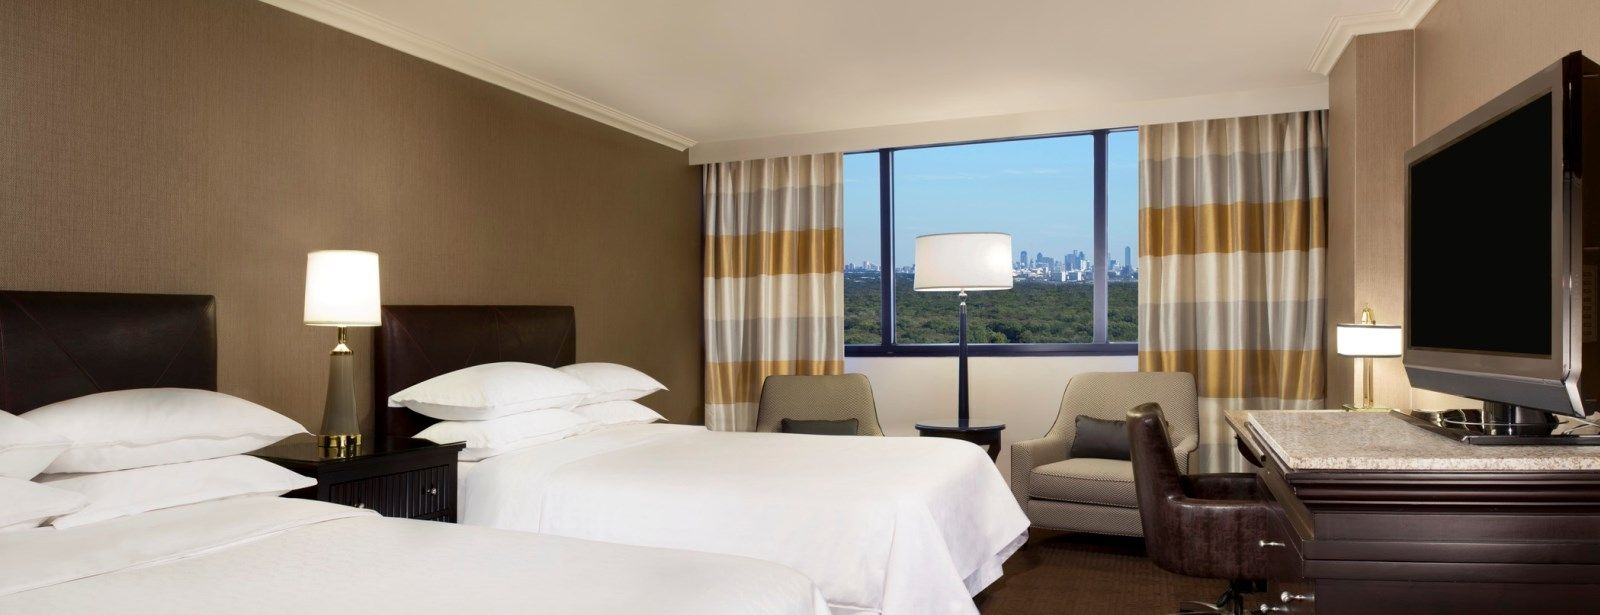 Double Guest Room - Sheraton DFW Airport Hotel